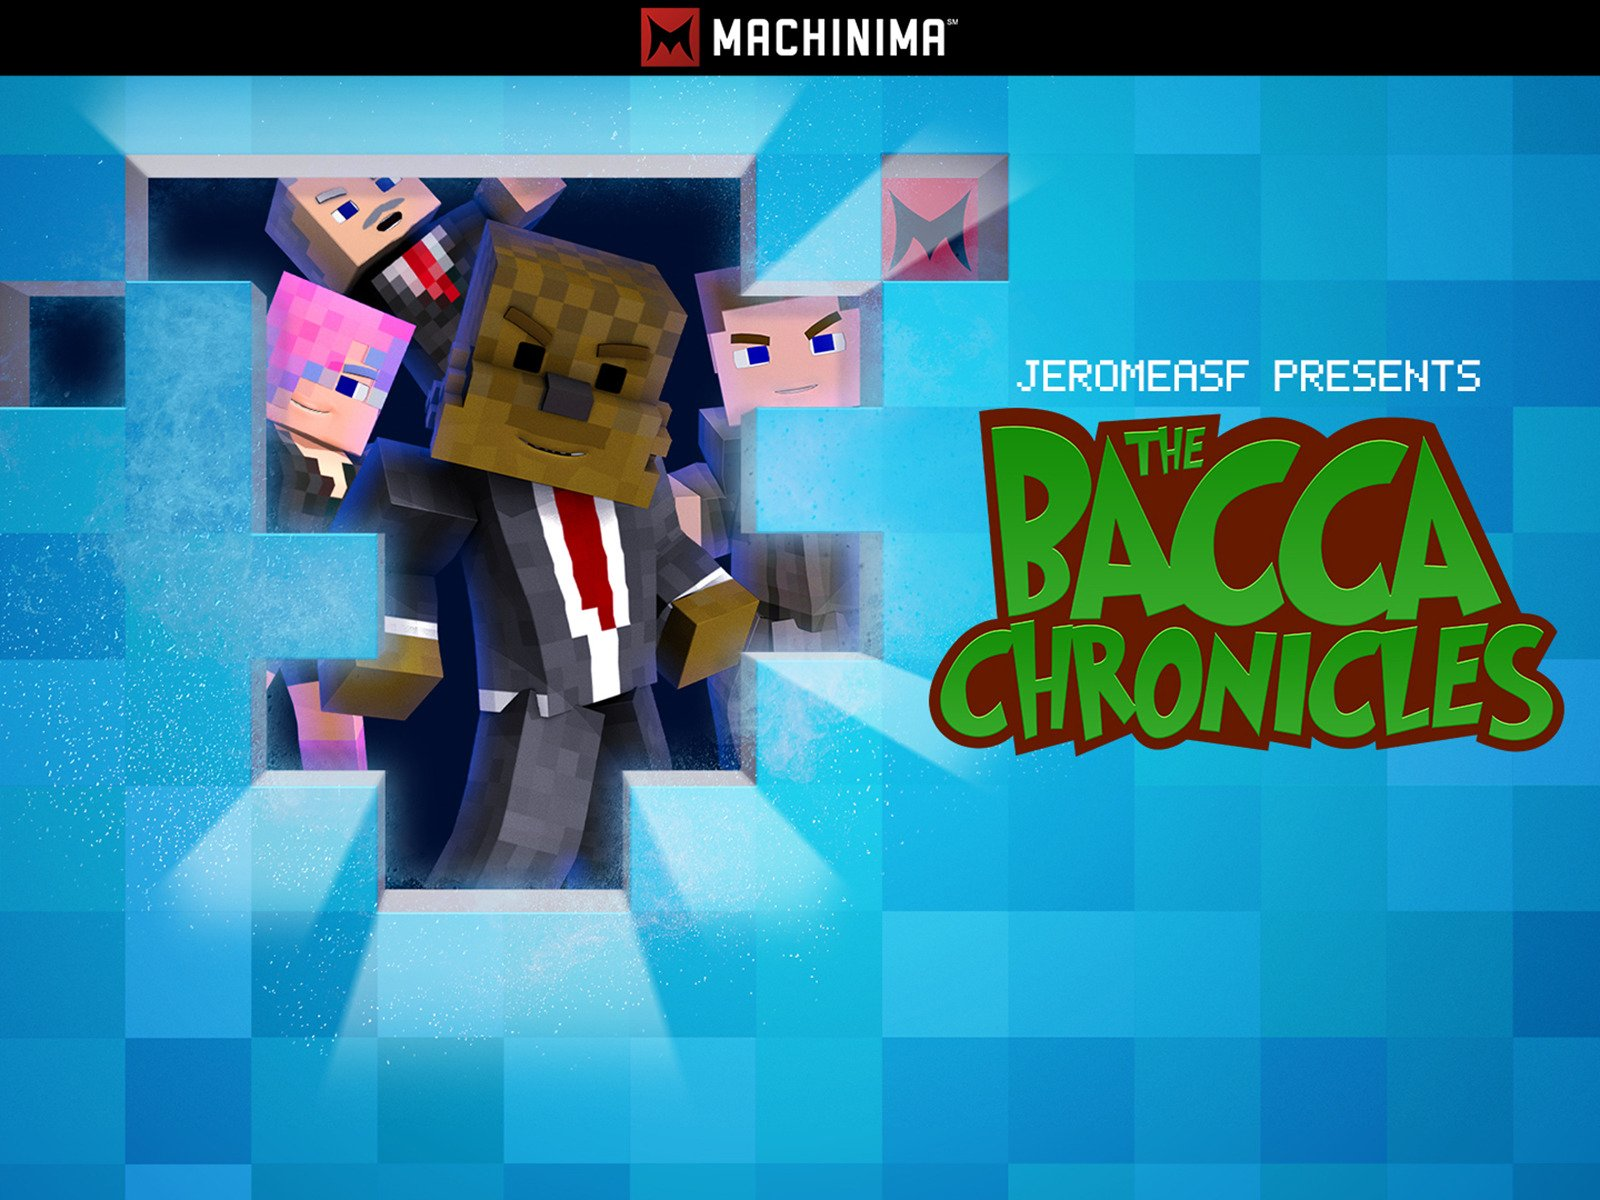 The Bacca Chronicles